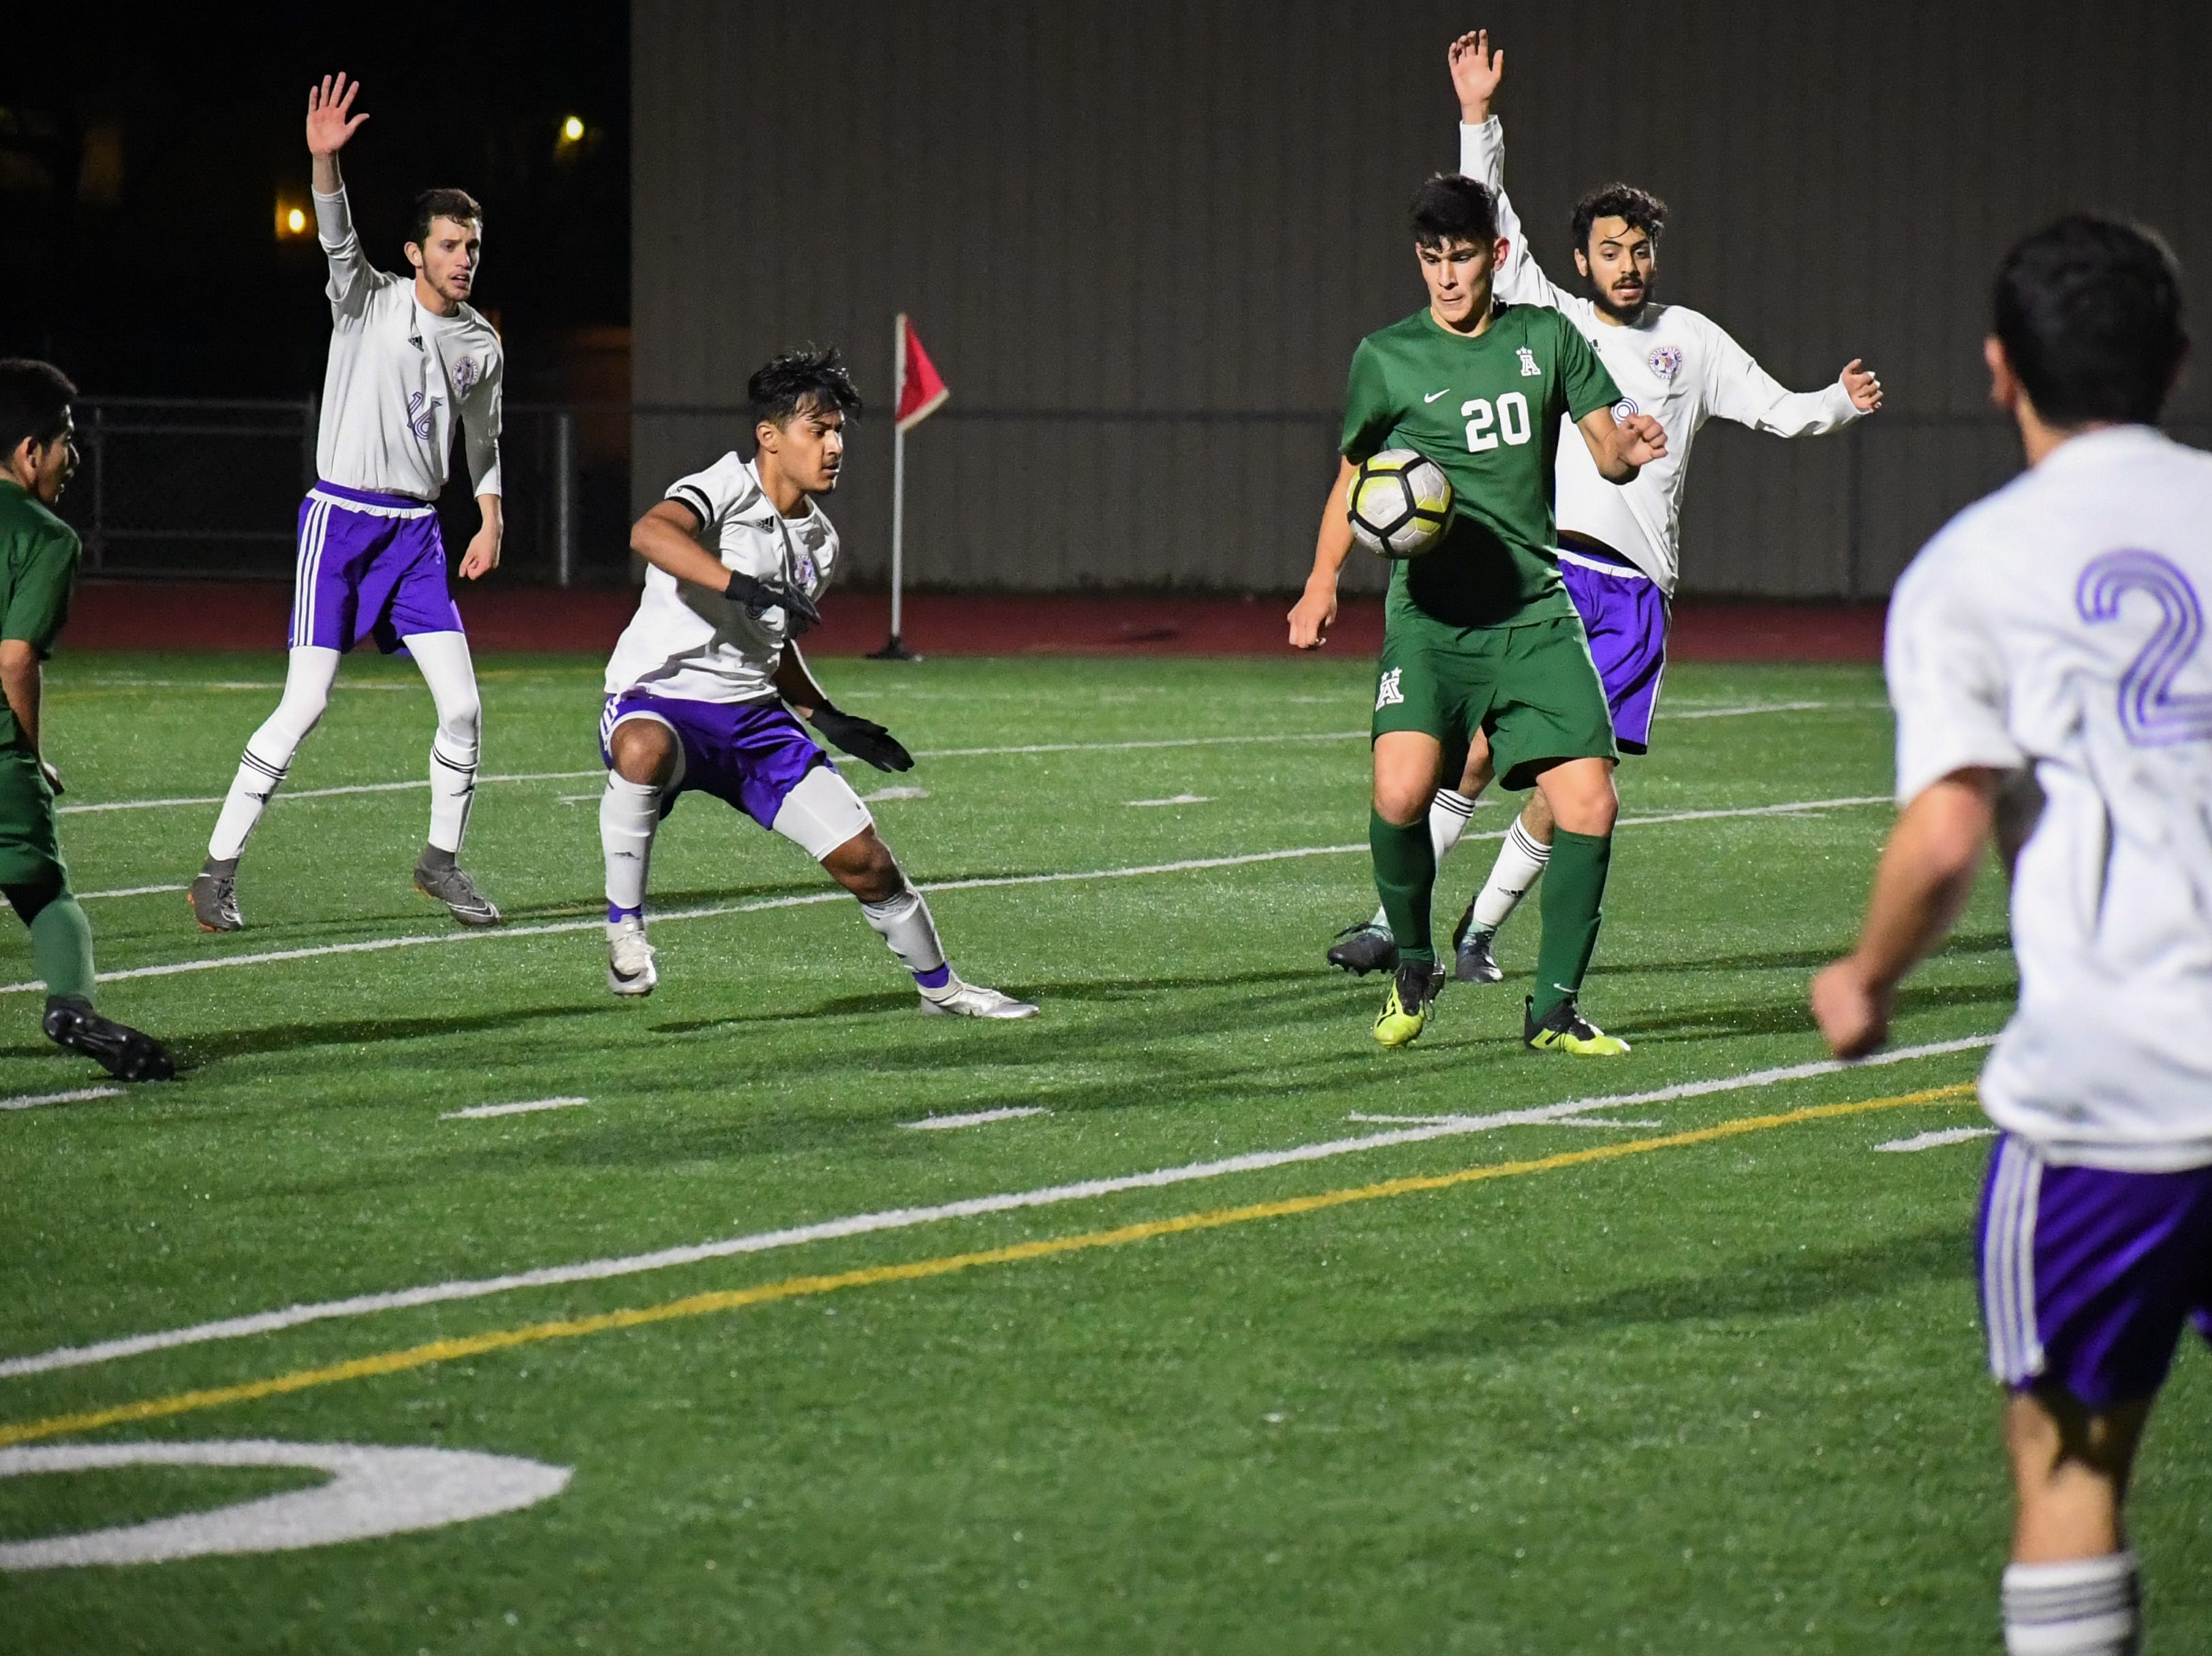 Alisal midfielder Abraham Montaño (20) takes a pass from Julien Peguero and looks to score.